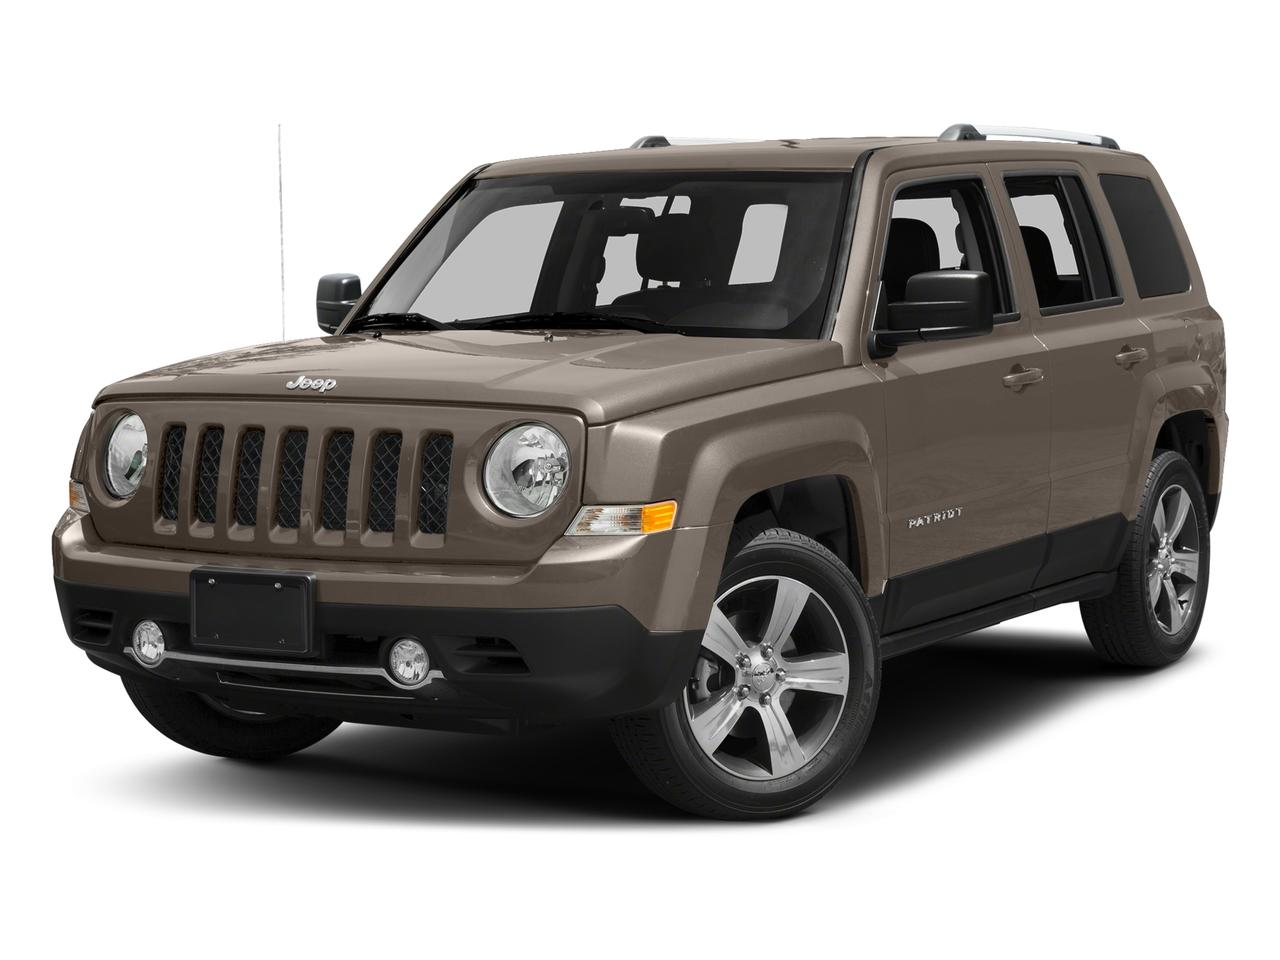 2017 Jeep Patriot Vehicle Photo in Elyria, OH 44035